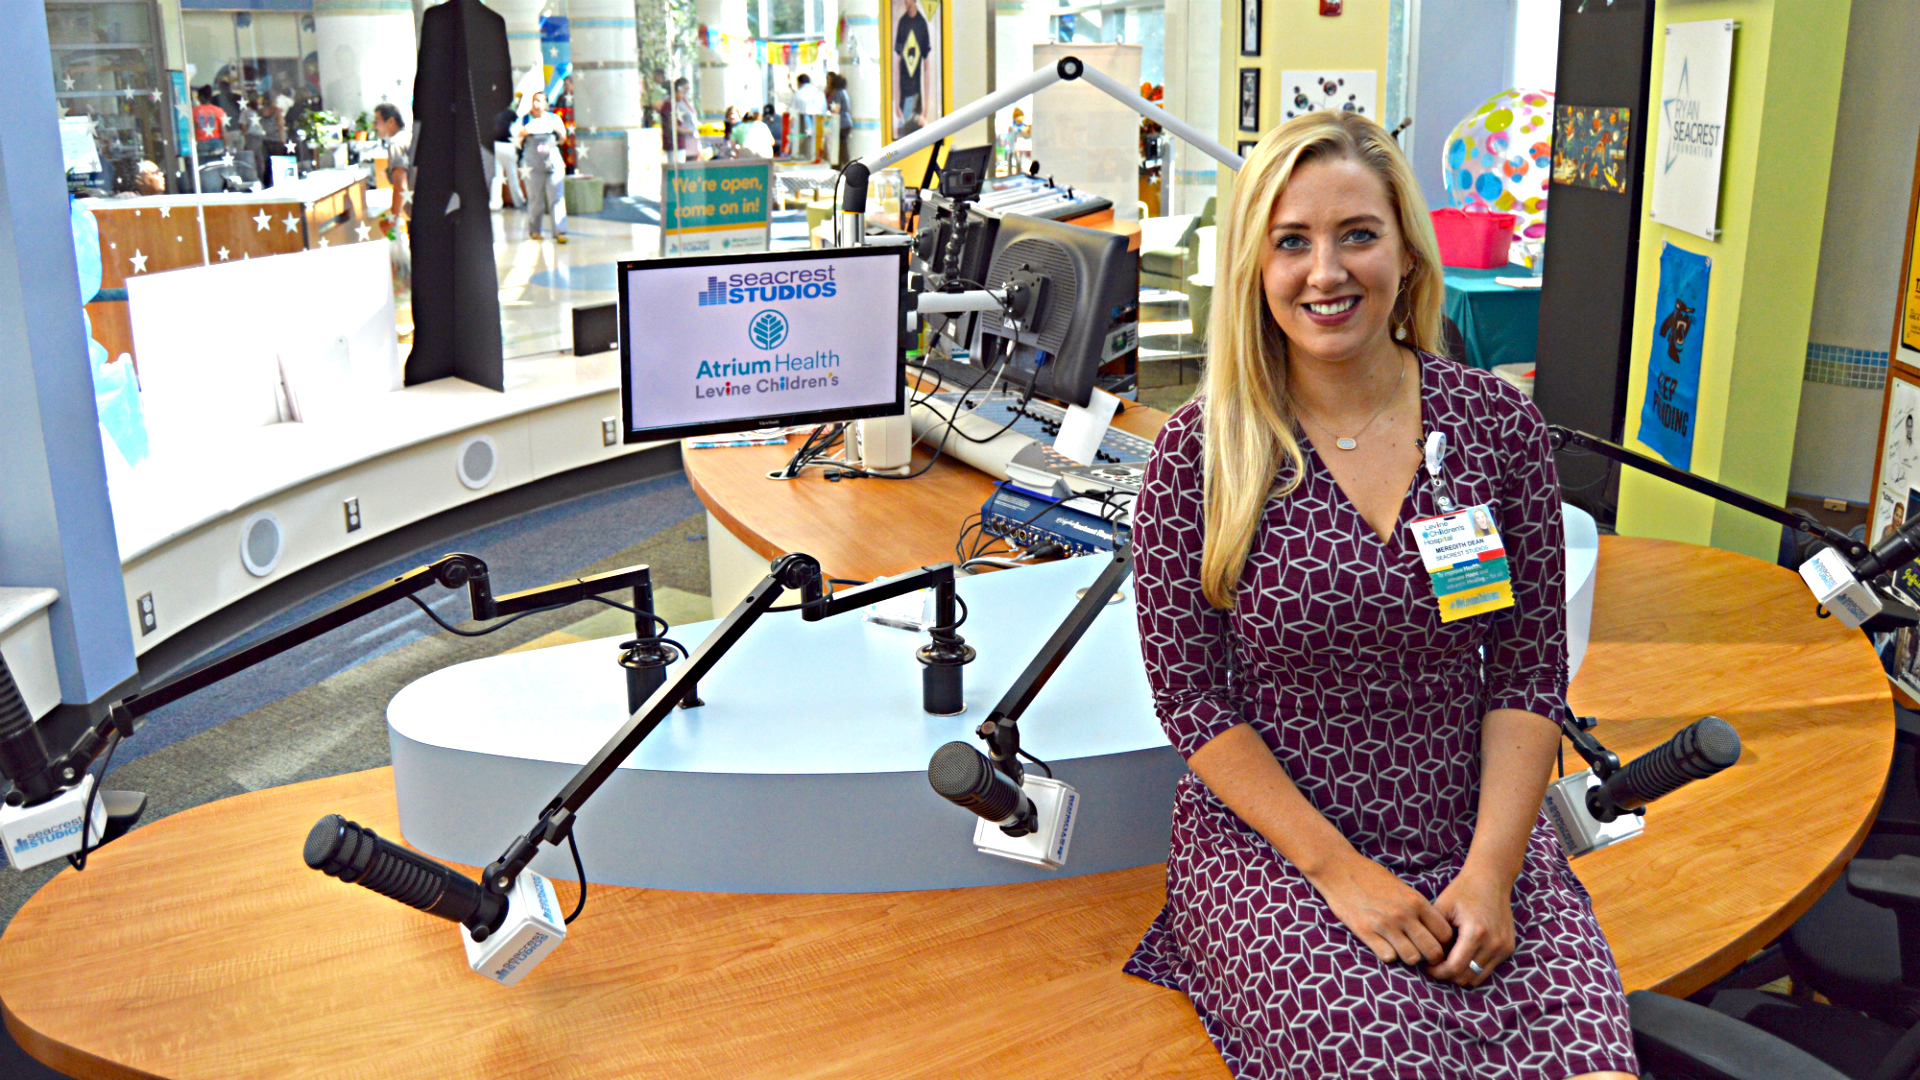 Kristin Babb, BSN, RN, a NICU nurse at Levine Children's, and Meredith Dean, the program coordinator at Seacrest Studios, share the ways they've seen music help their young patients.